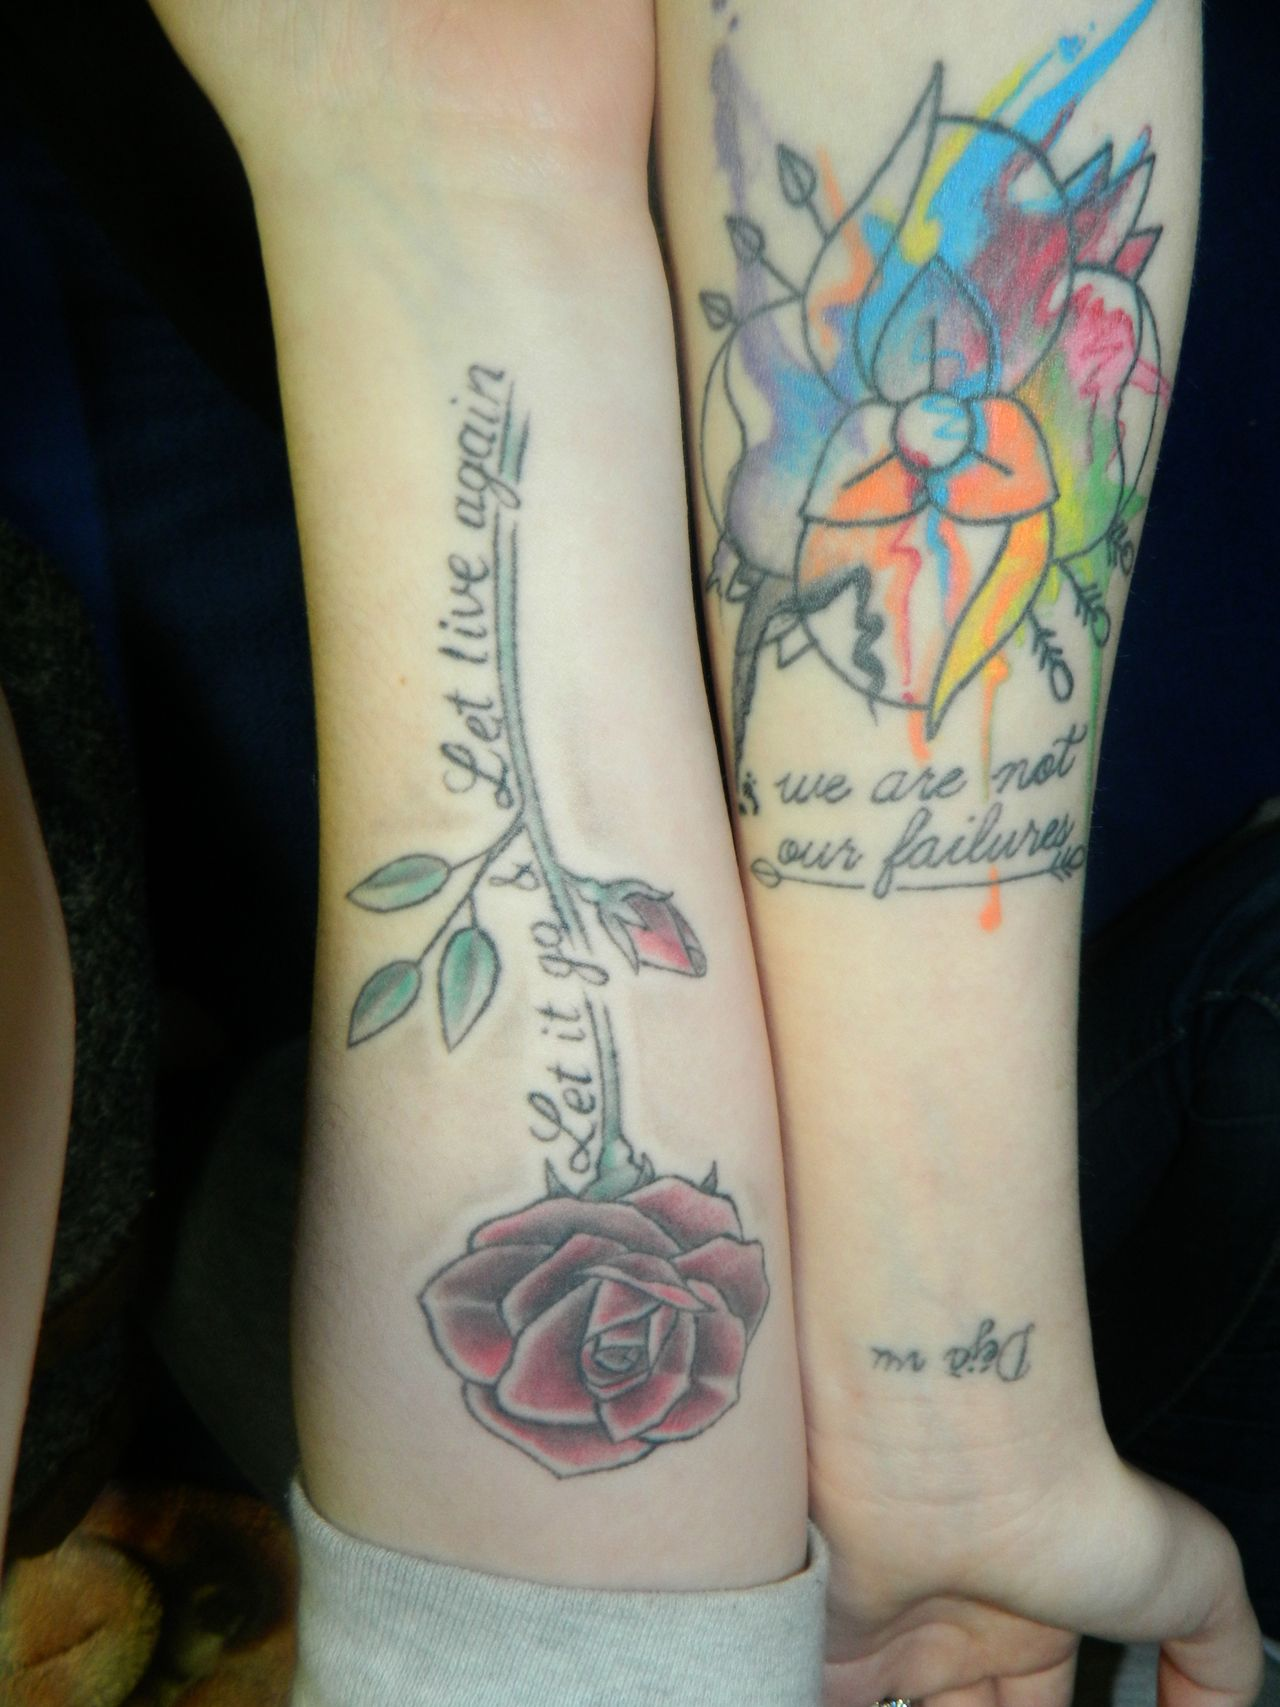 Band tattoos Mice And Men & La Dispute submitted by counterpur